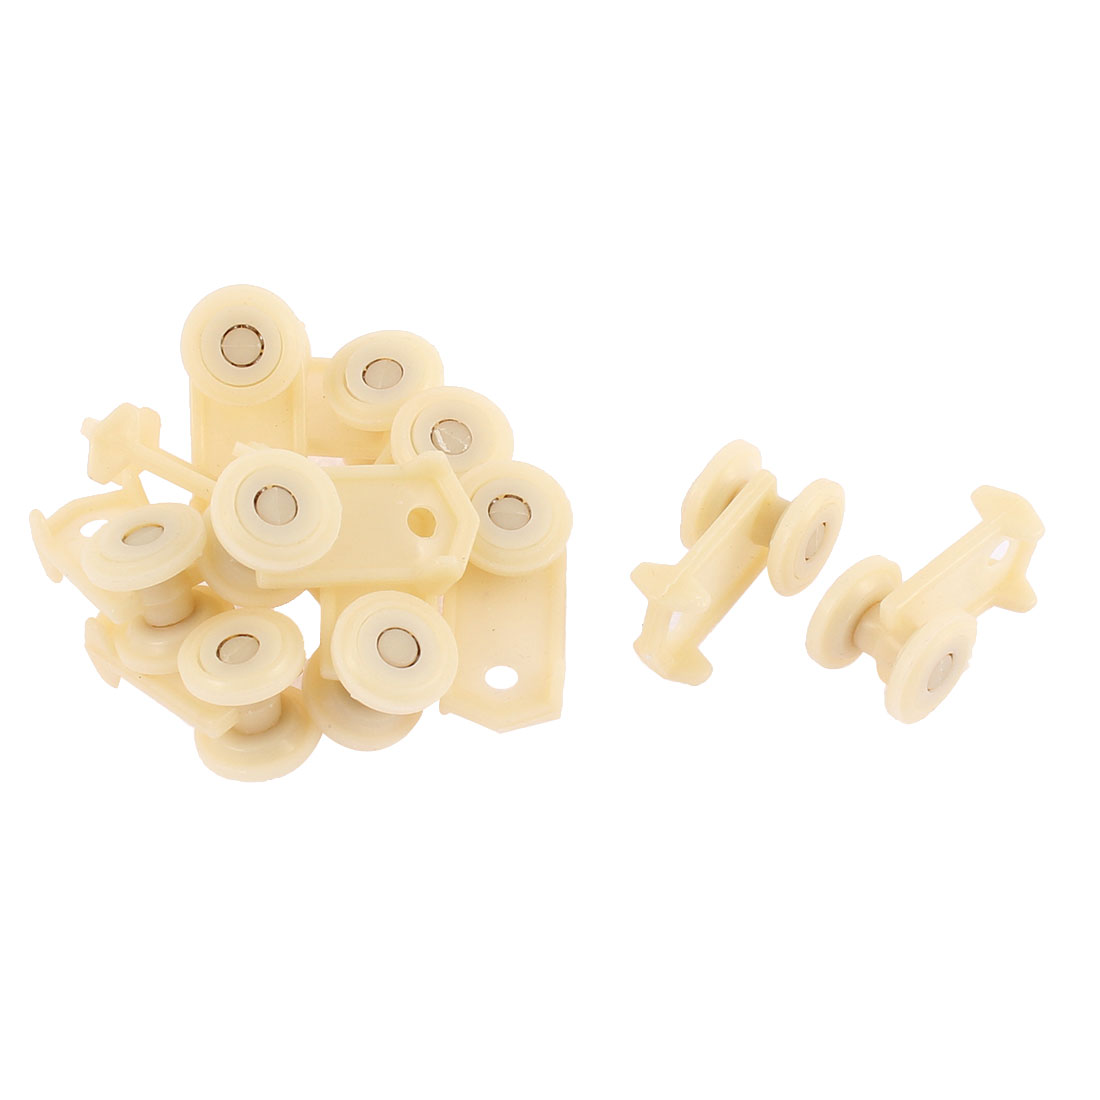 Plastic Curtain Track Rail Roller Carrier Beige 10 Pcs